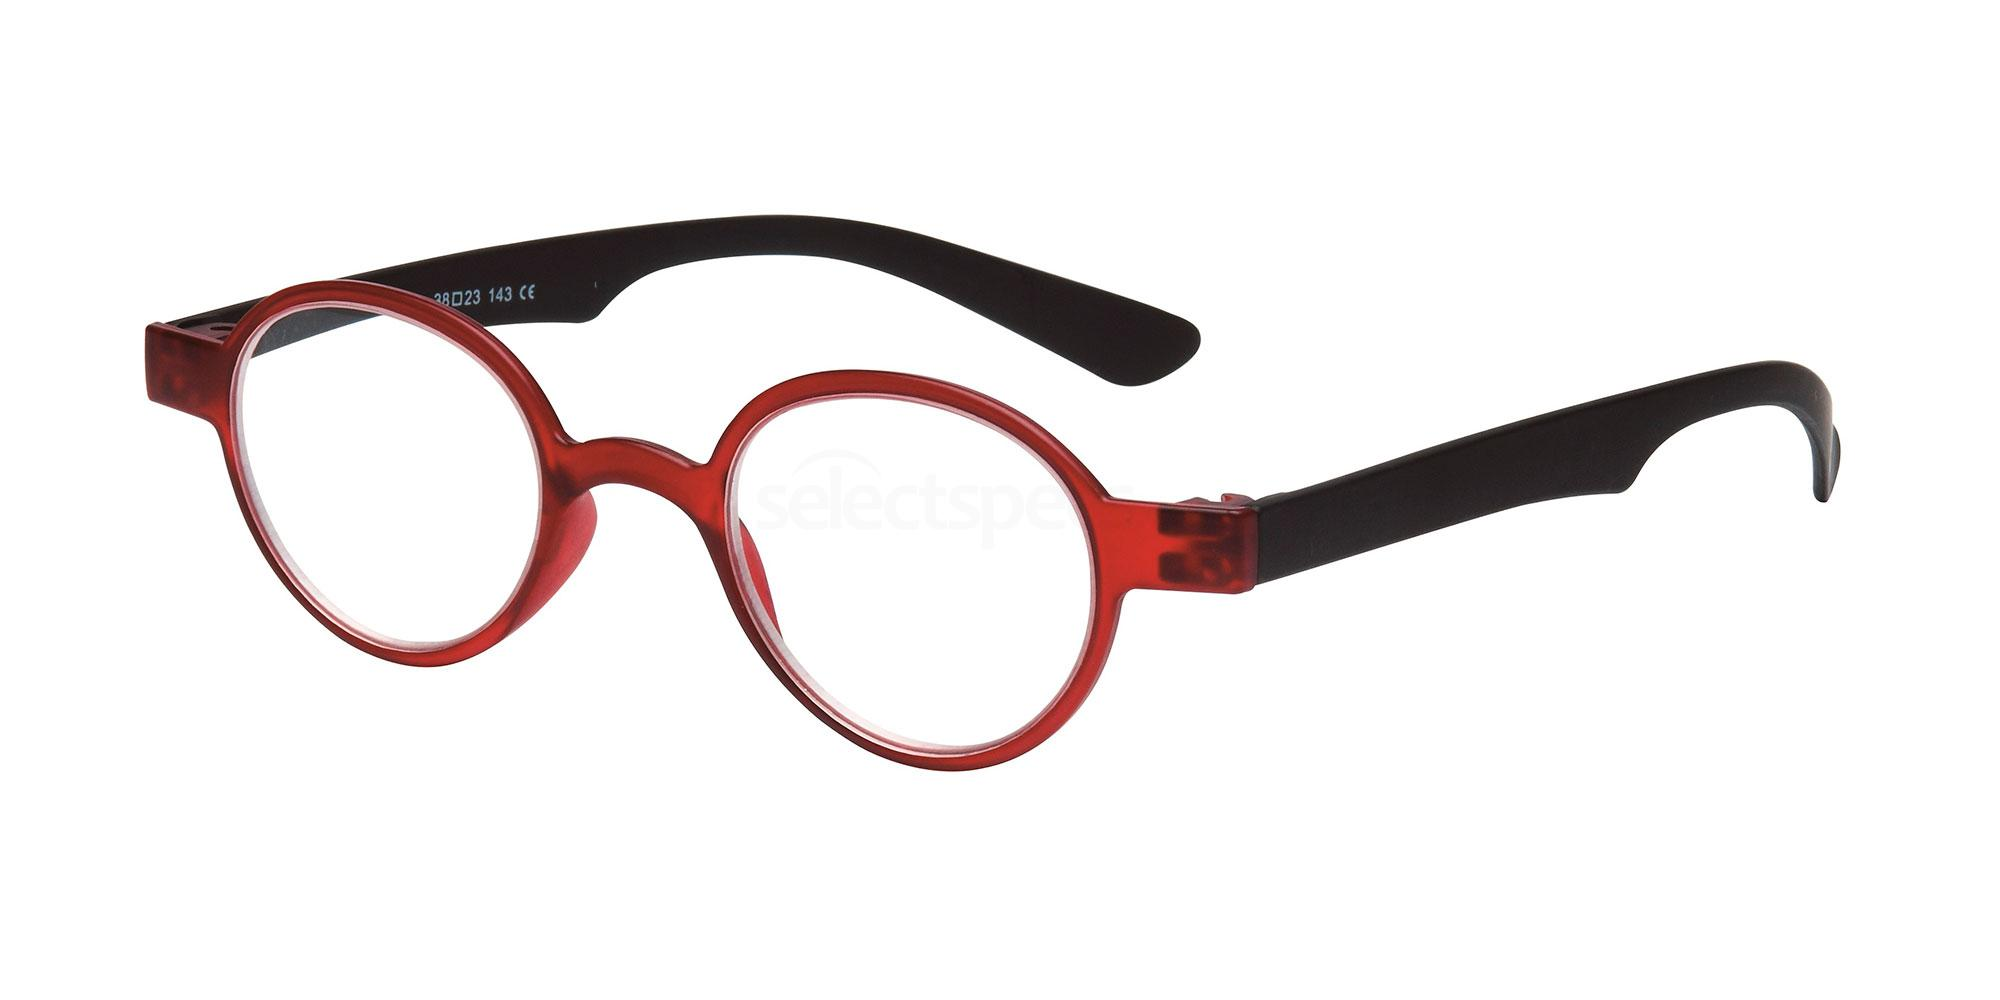 +2.00 Power Readers R17A - A: Red/Black Accessories, Univo Readers